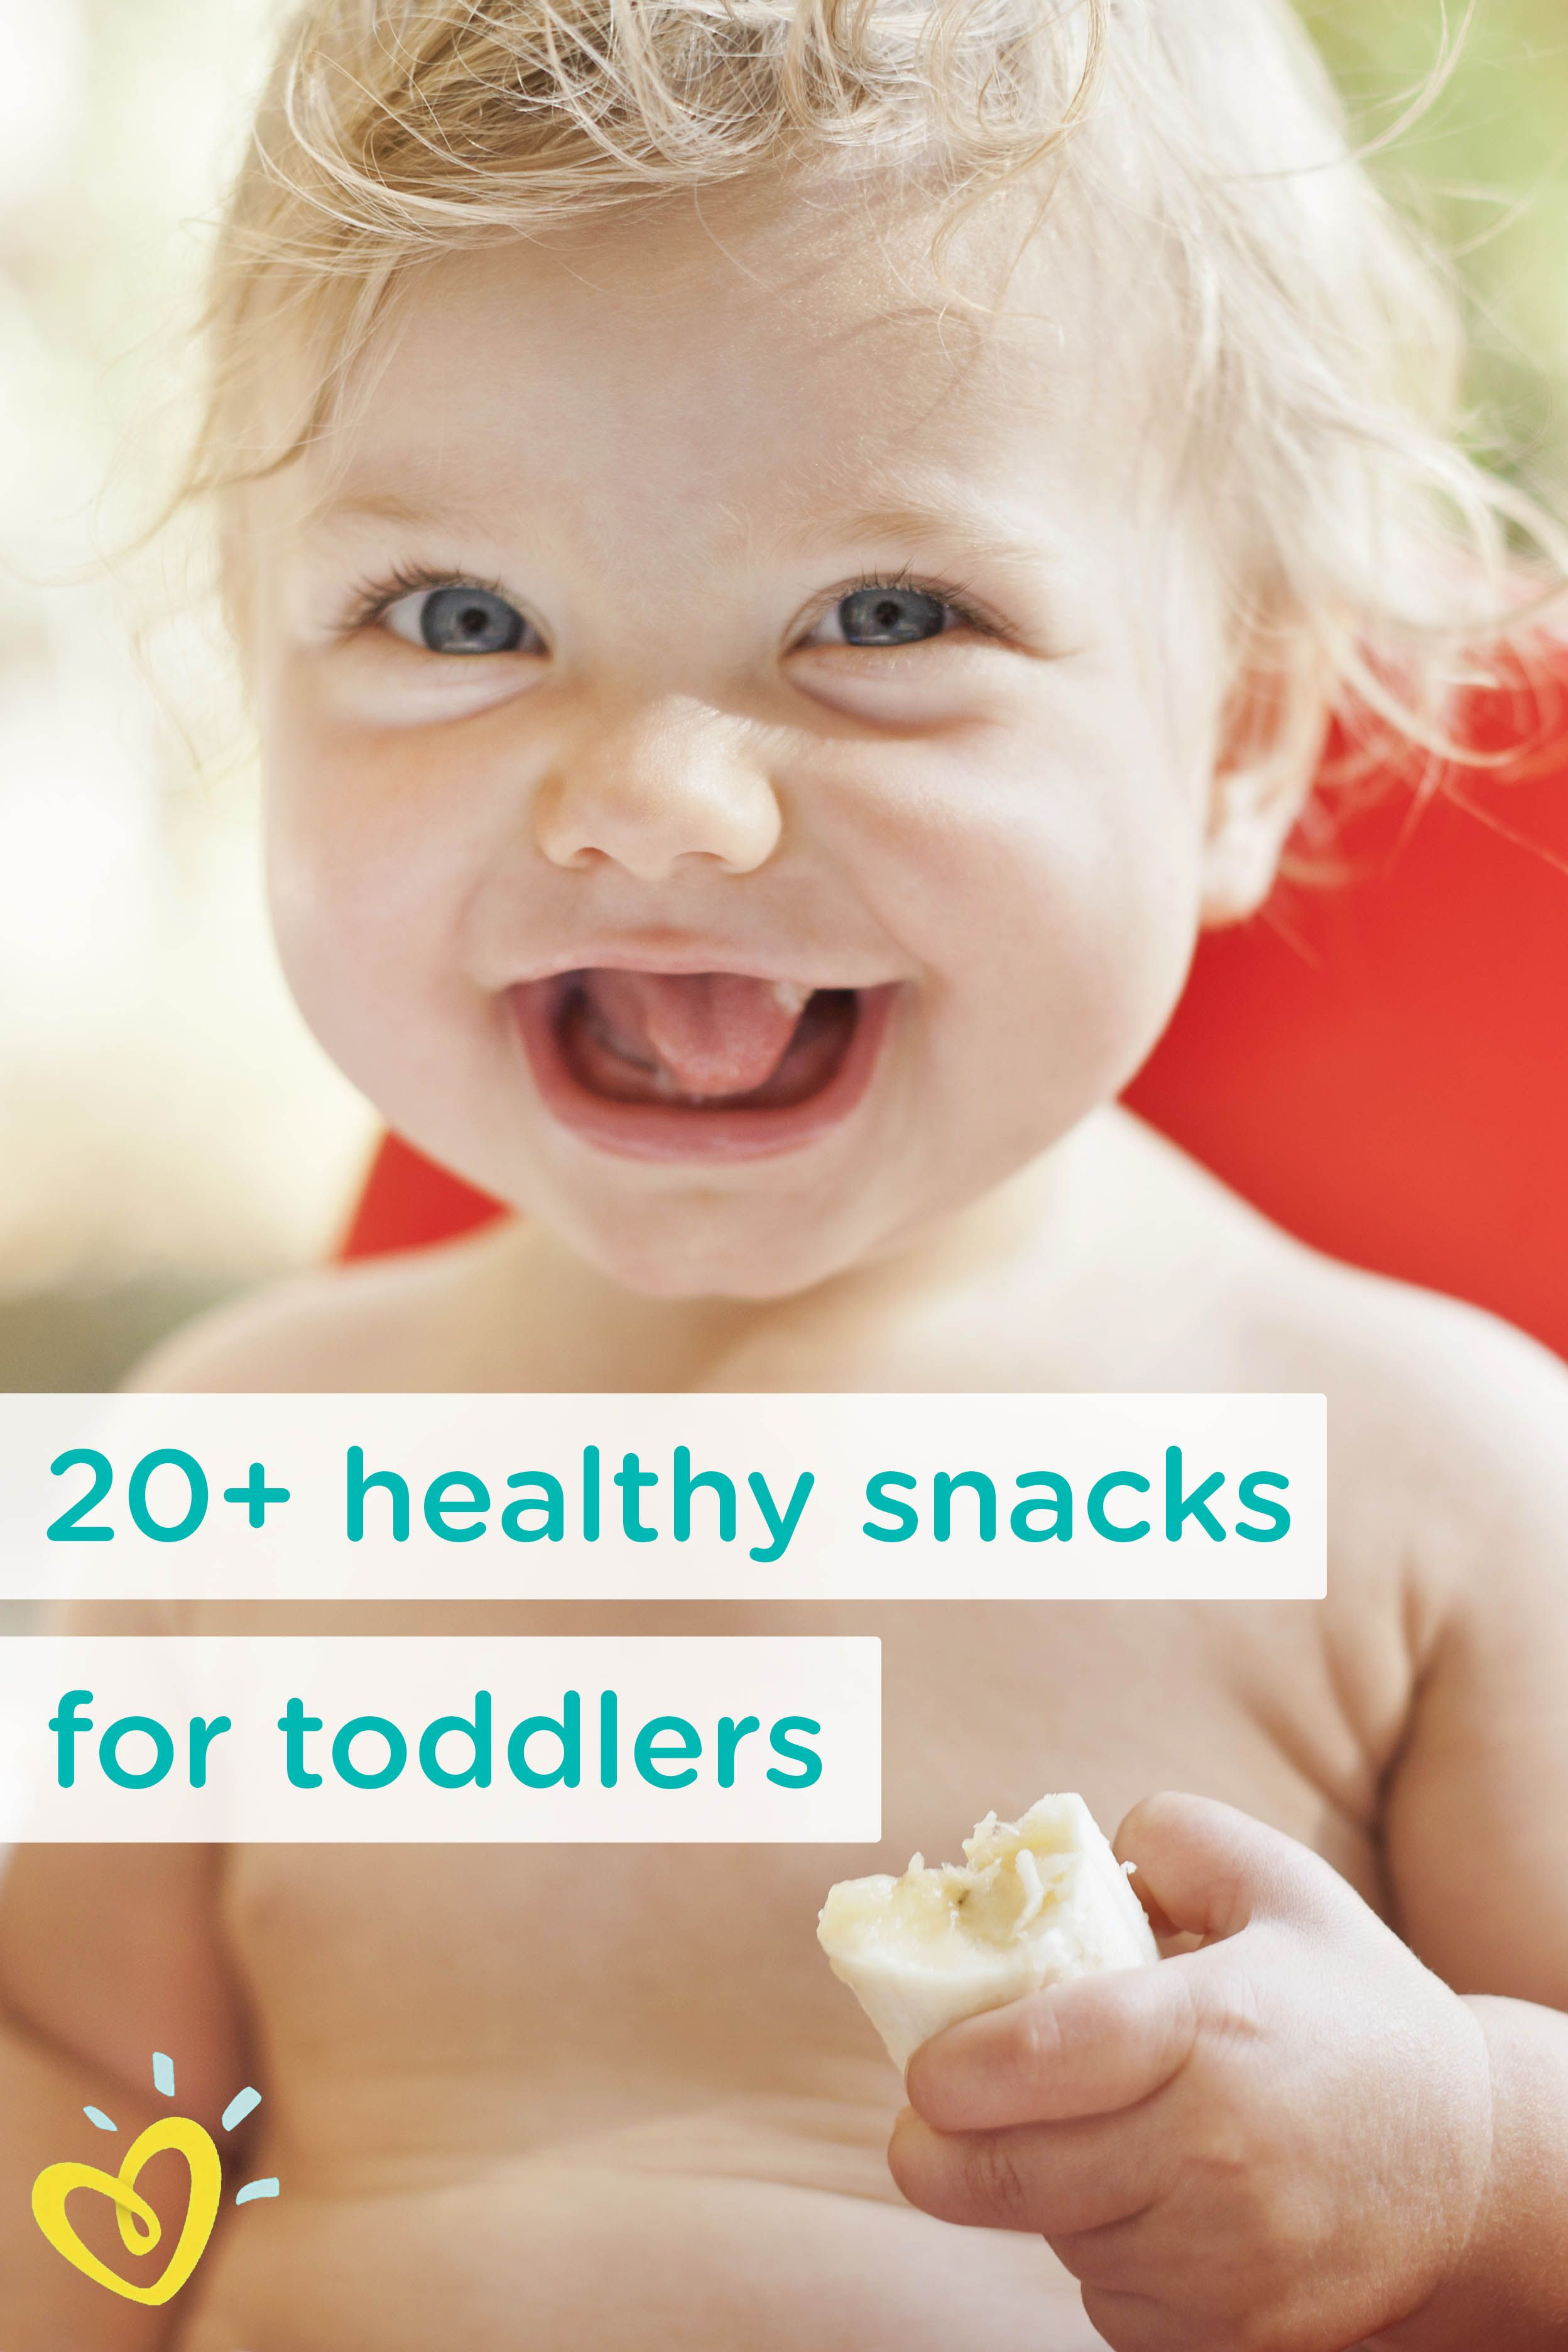 Healthy Snack Ideas For Toddlers And Preschoolers